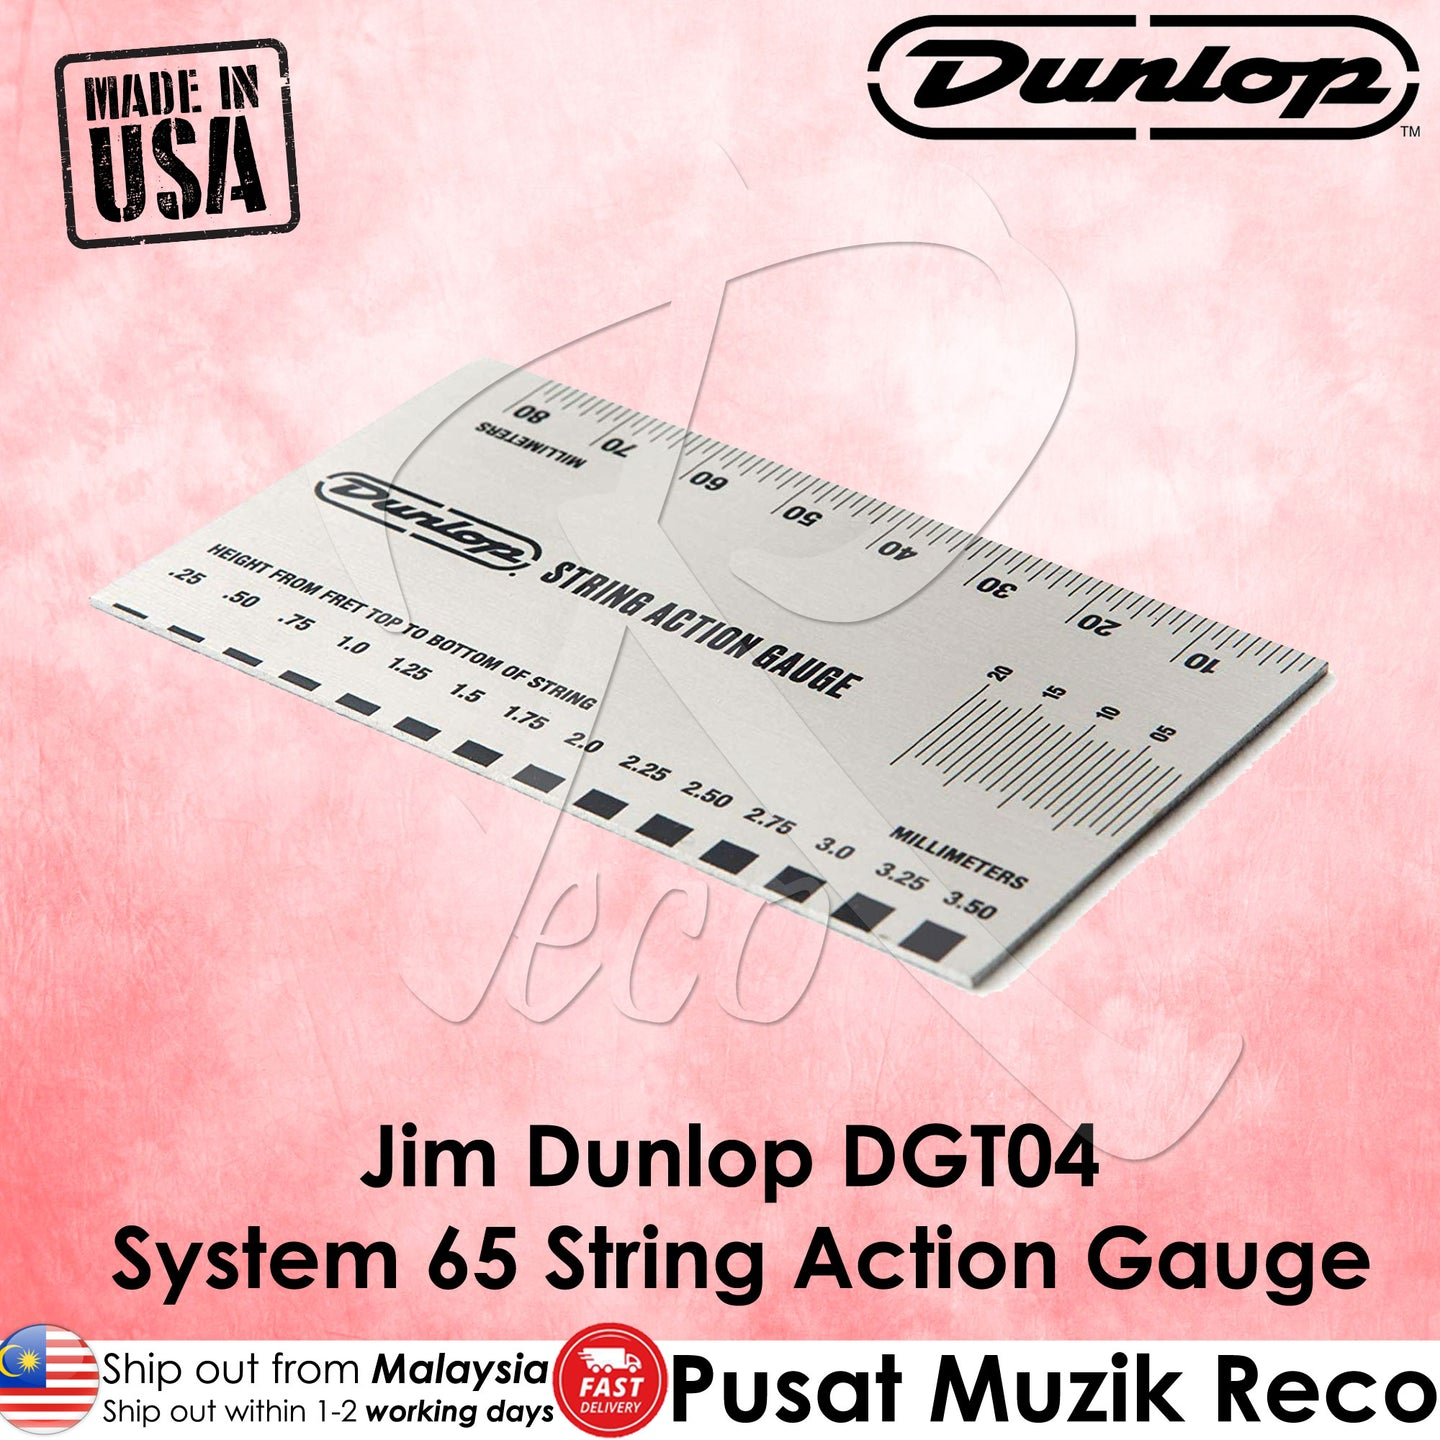 Jim Dunlop DGT04 System 65 Guitar String Action Gauge | Reco Music Malaysia